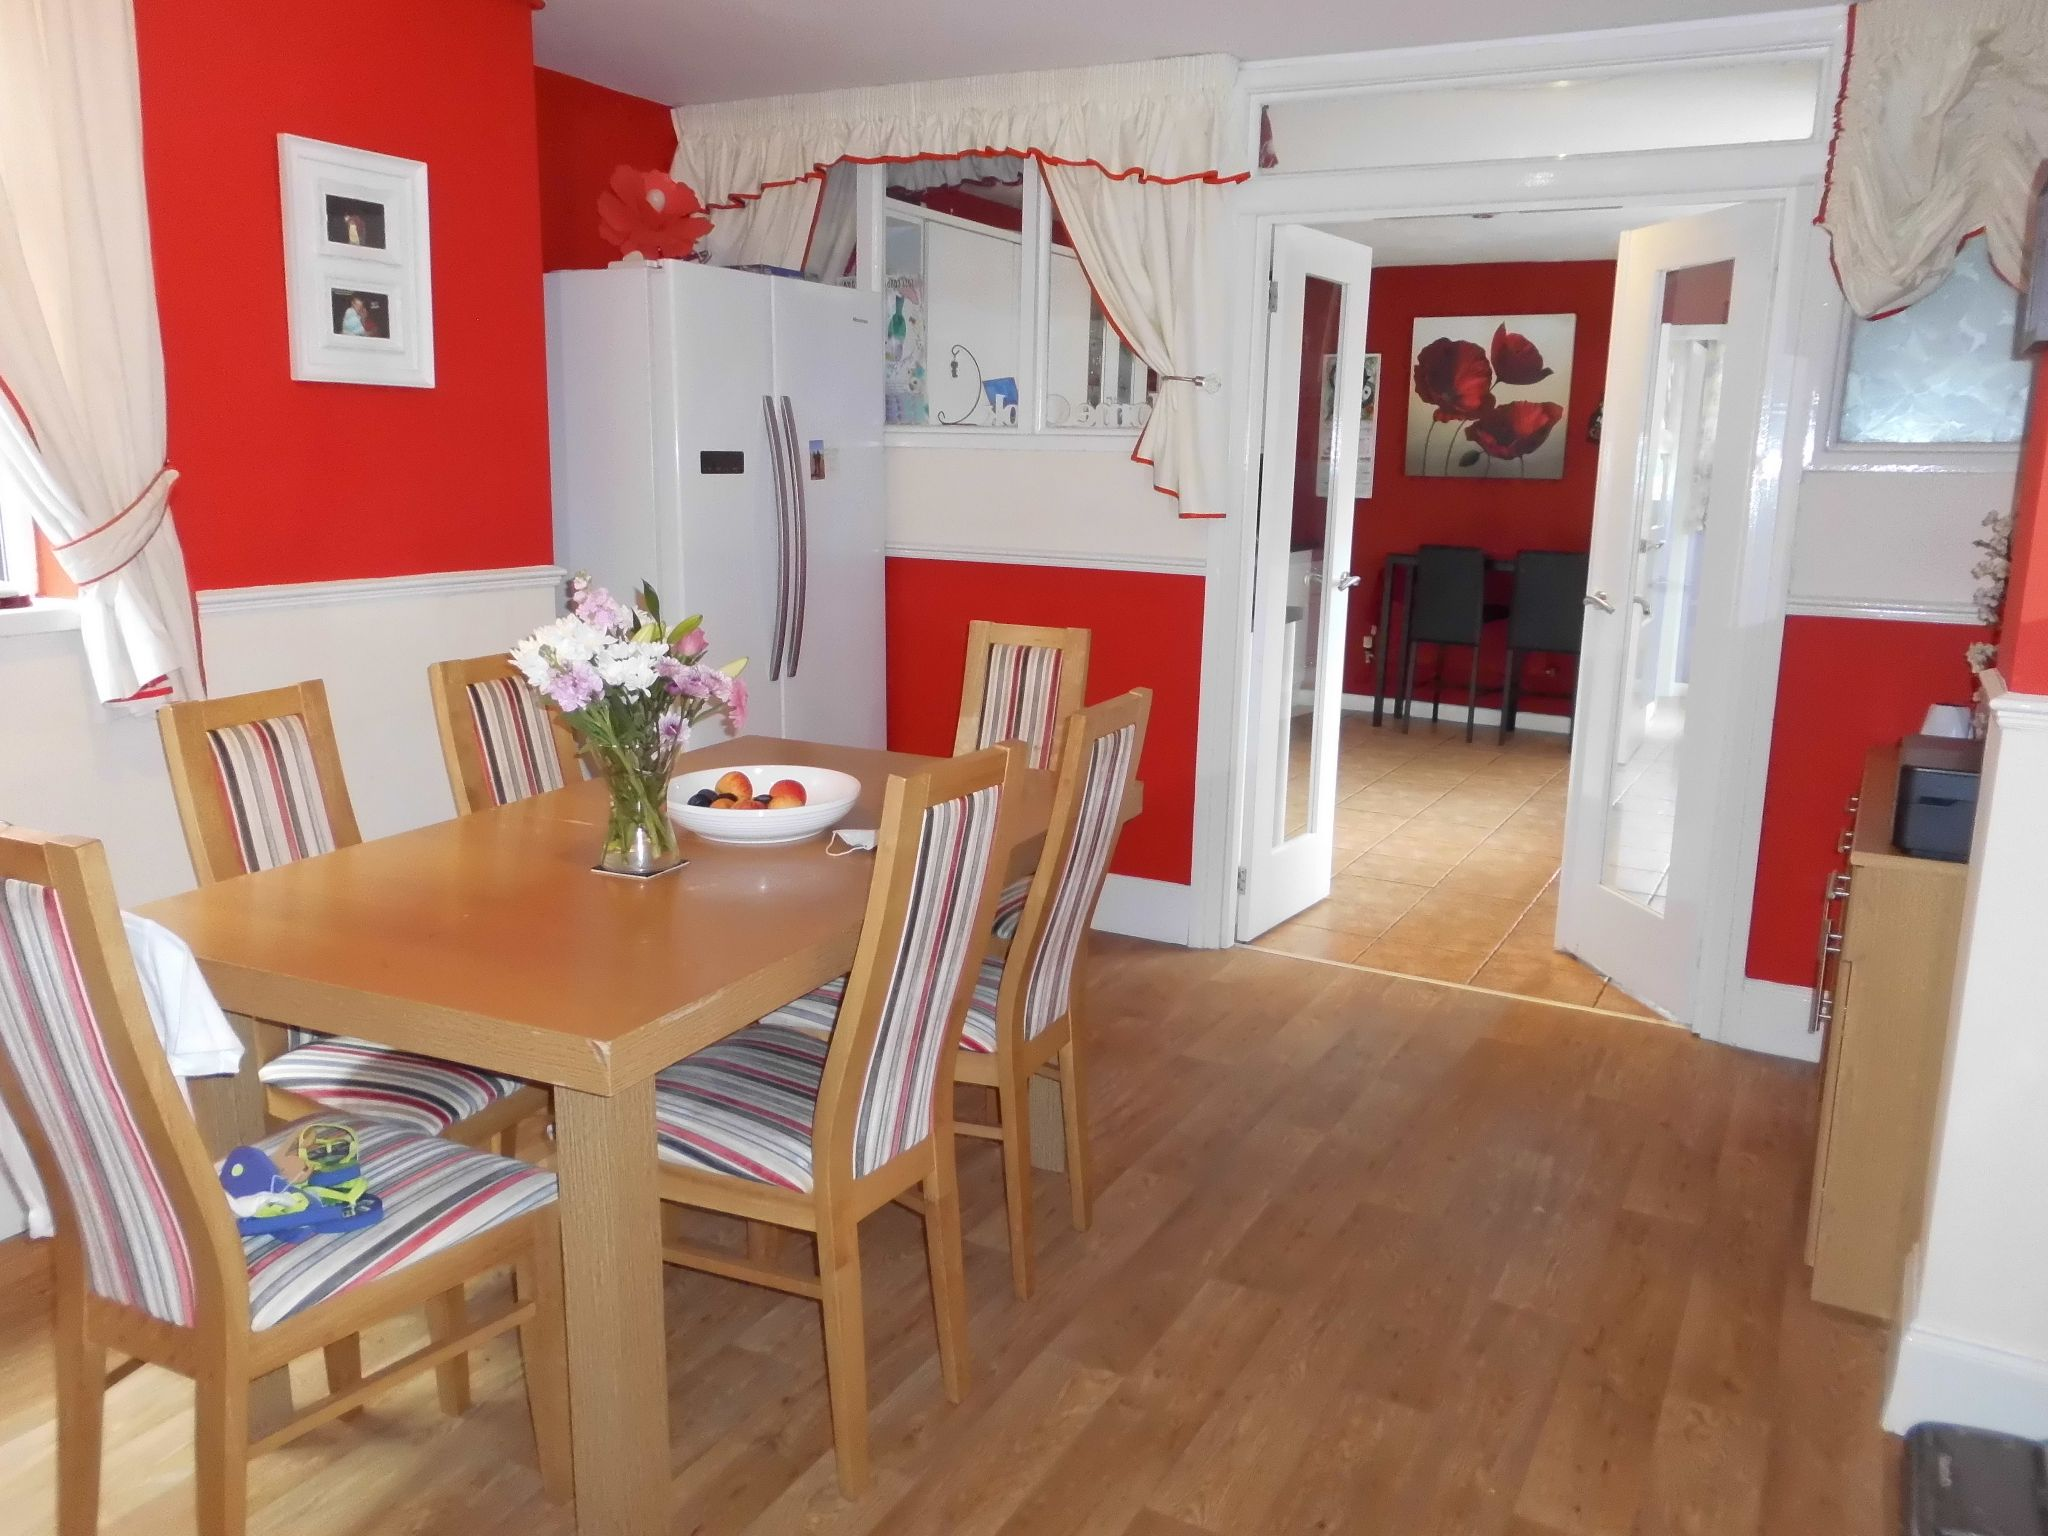 4 bedroom detached house For Sale in Leicester - Photograph 5.